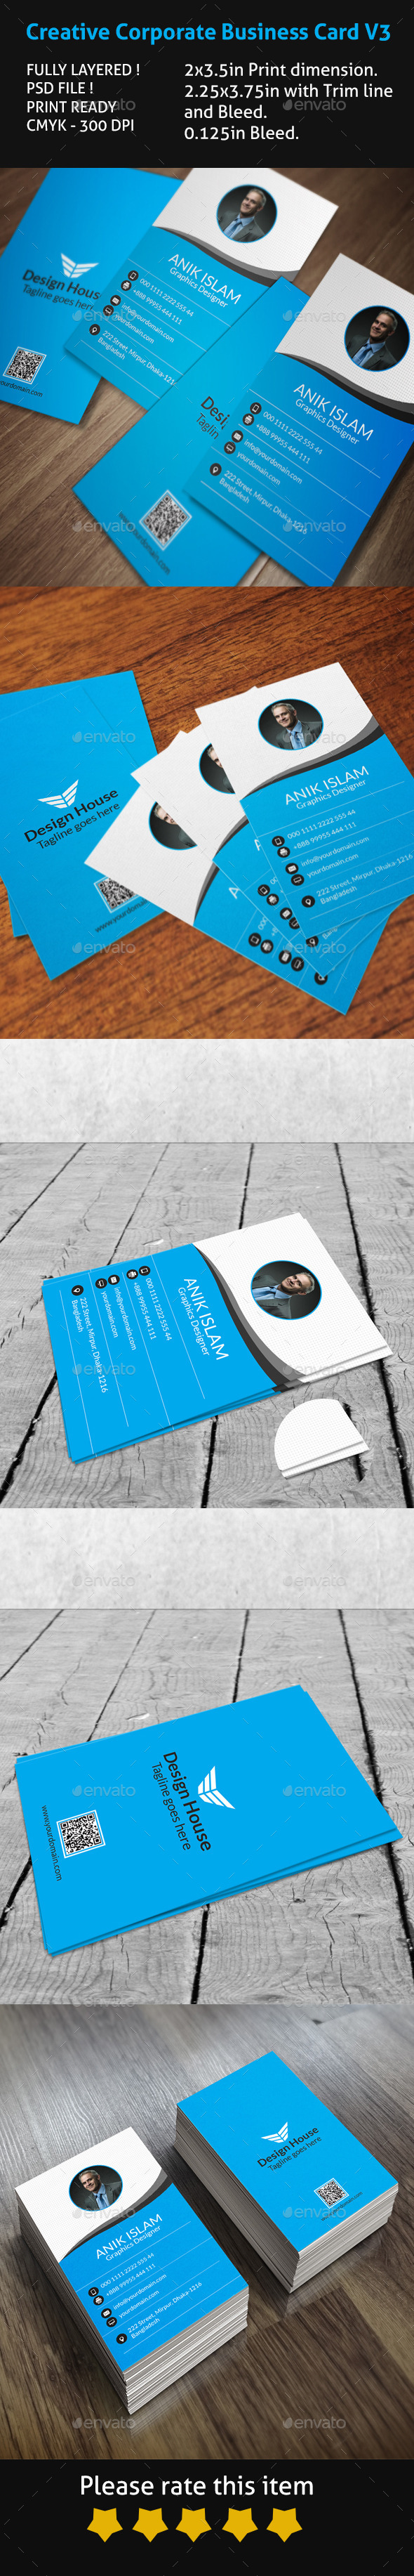 Creative Corporate Business Card V3 - Creative Business Cards